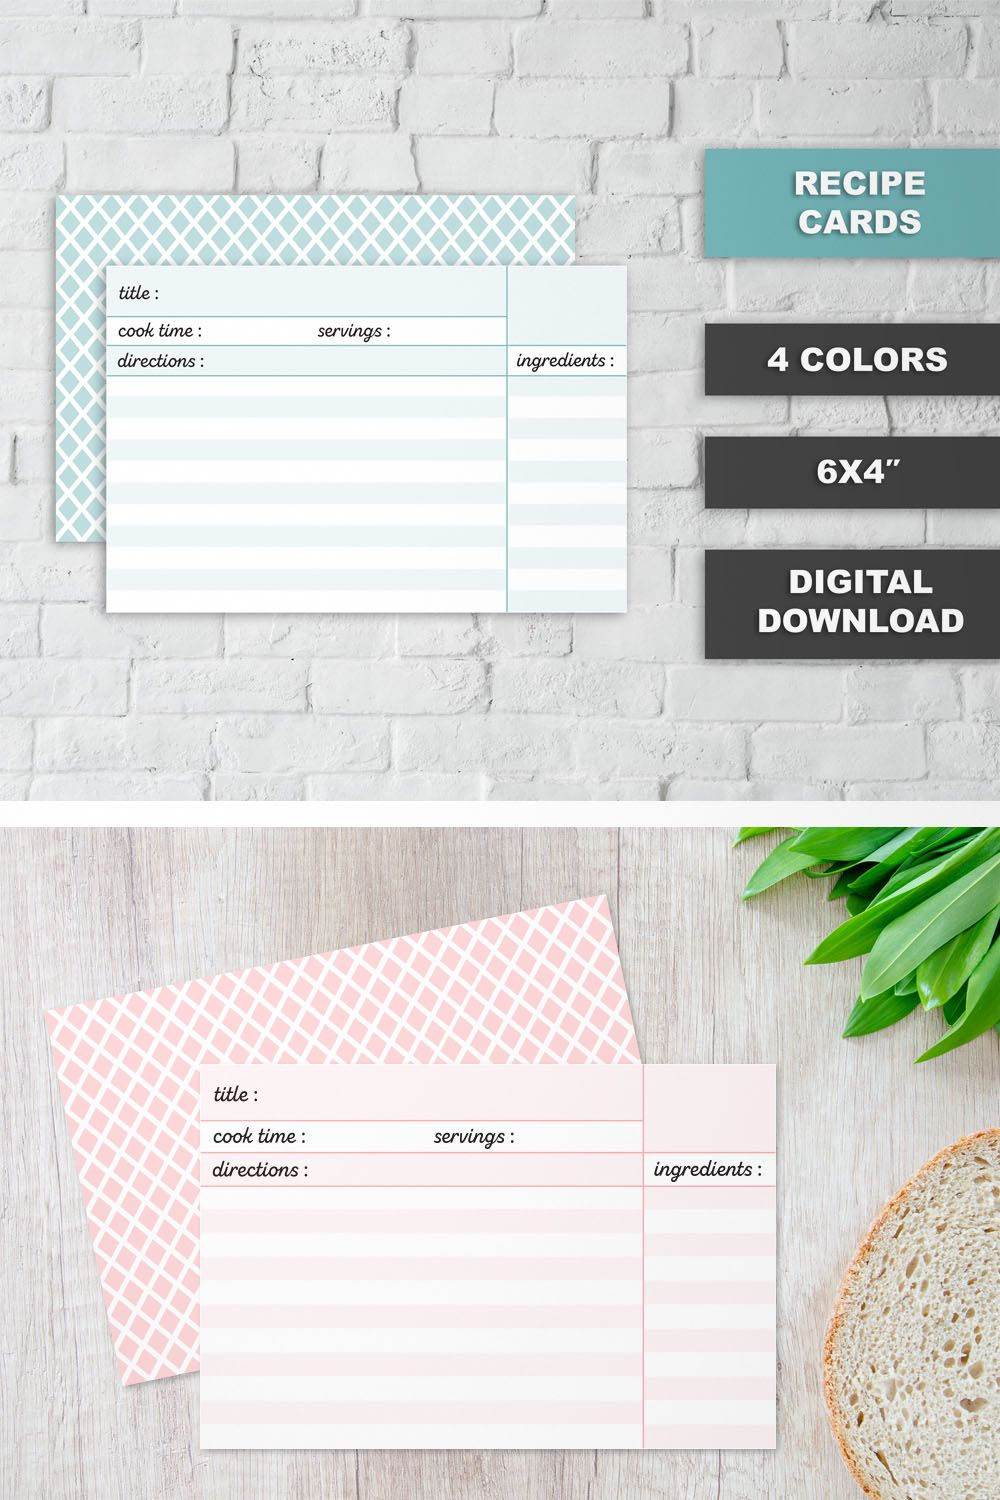 Printable Recipe Cards 6x4 4 Colors Instant Download Printable Recipe Organizer Printable Recipe Template In 2020 Printable Recipe Cards Recipe Cards Printing Double Sided